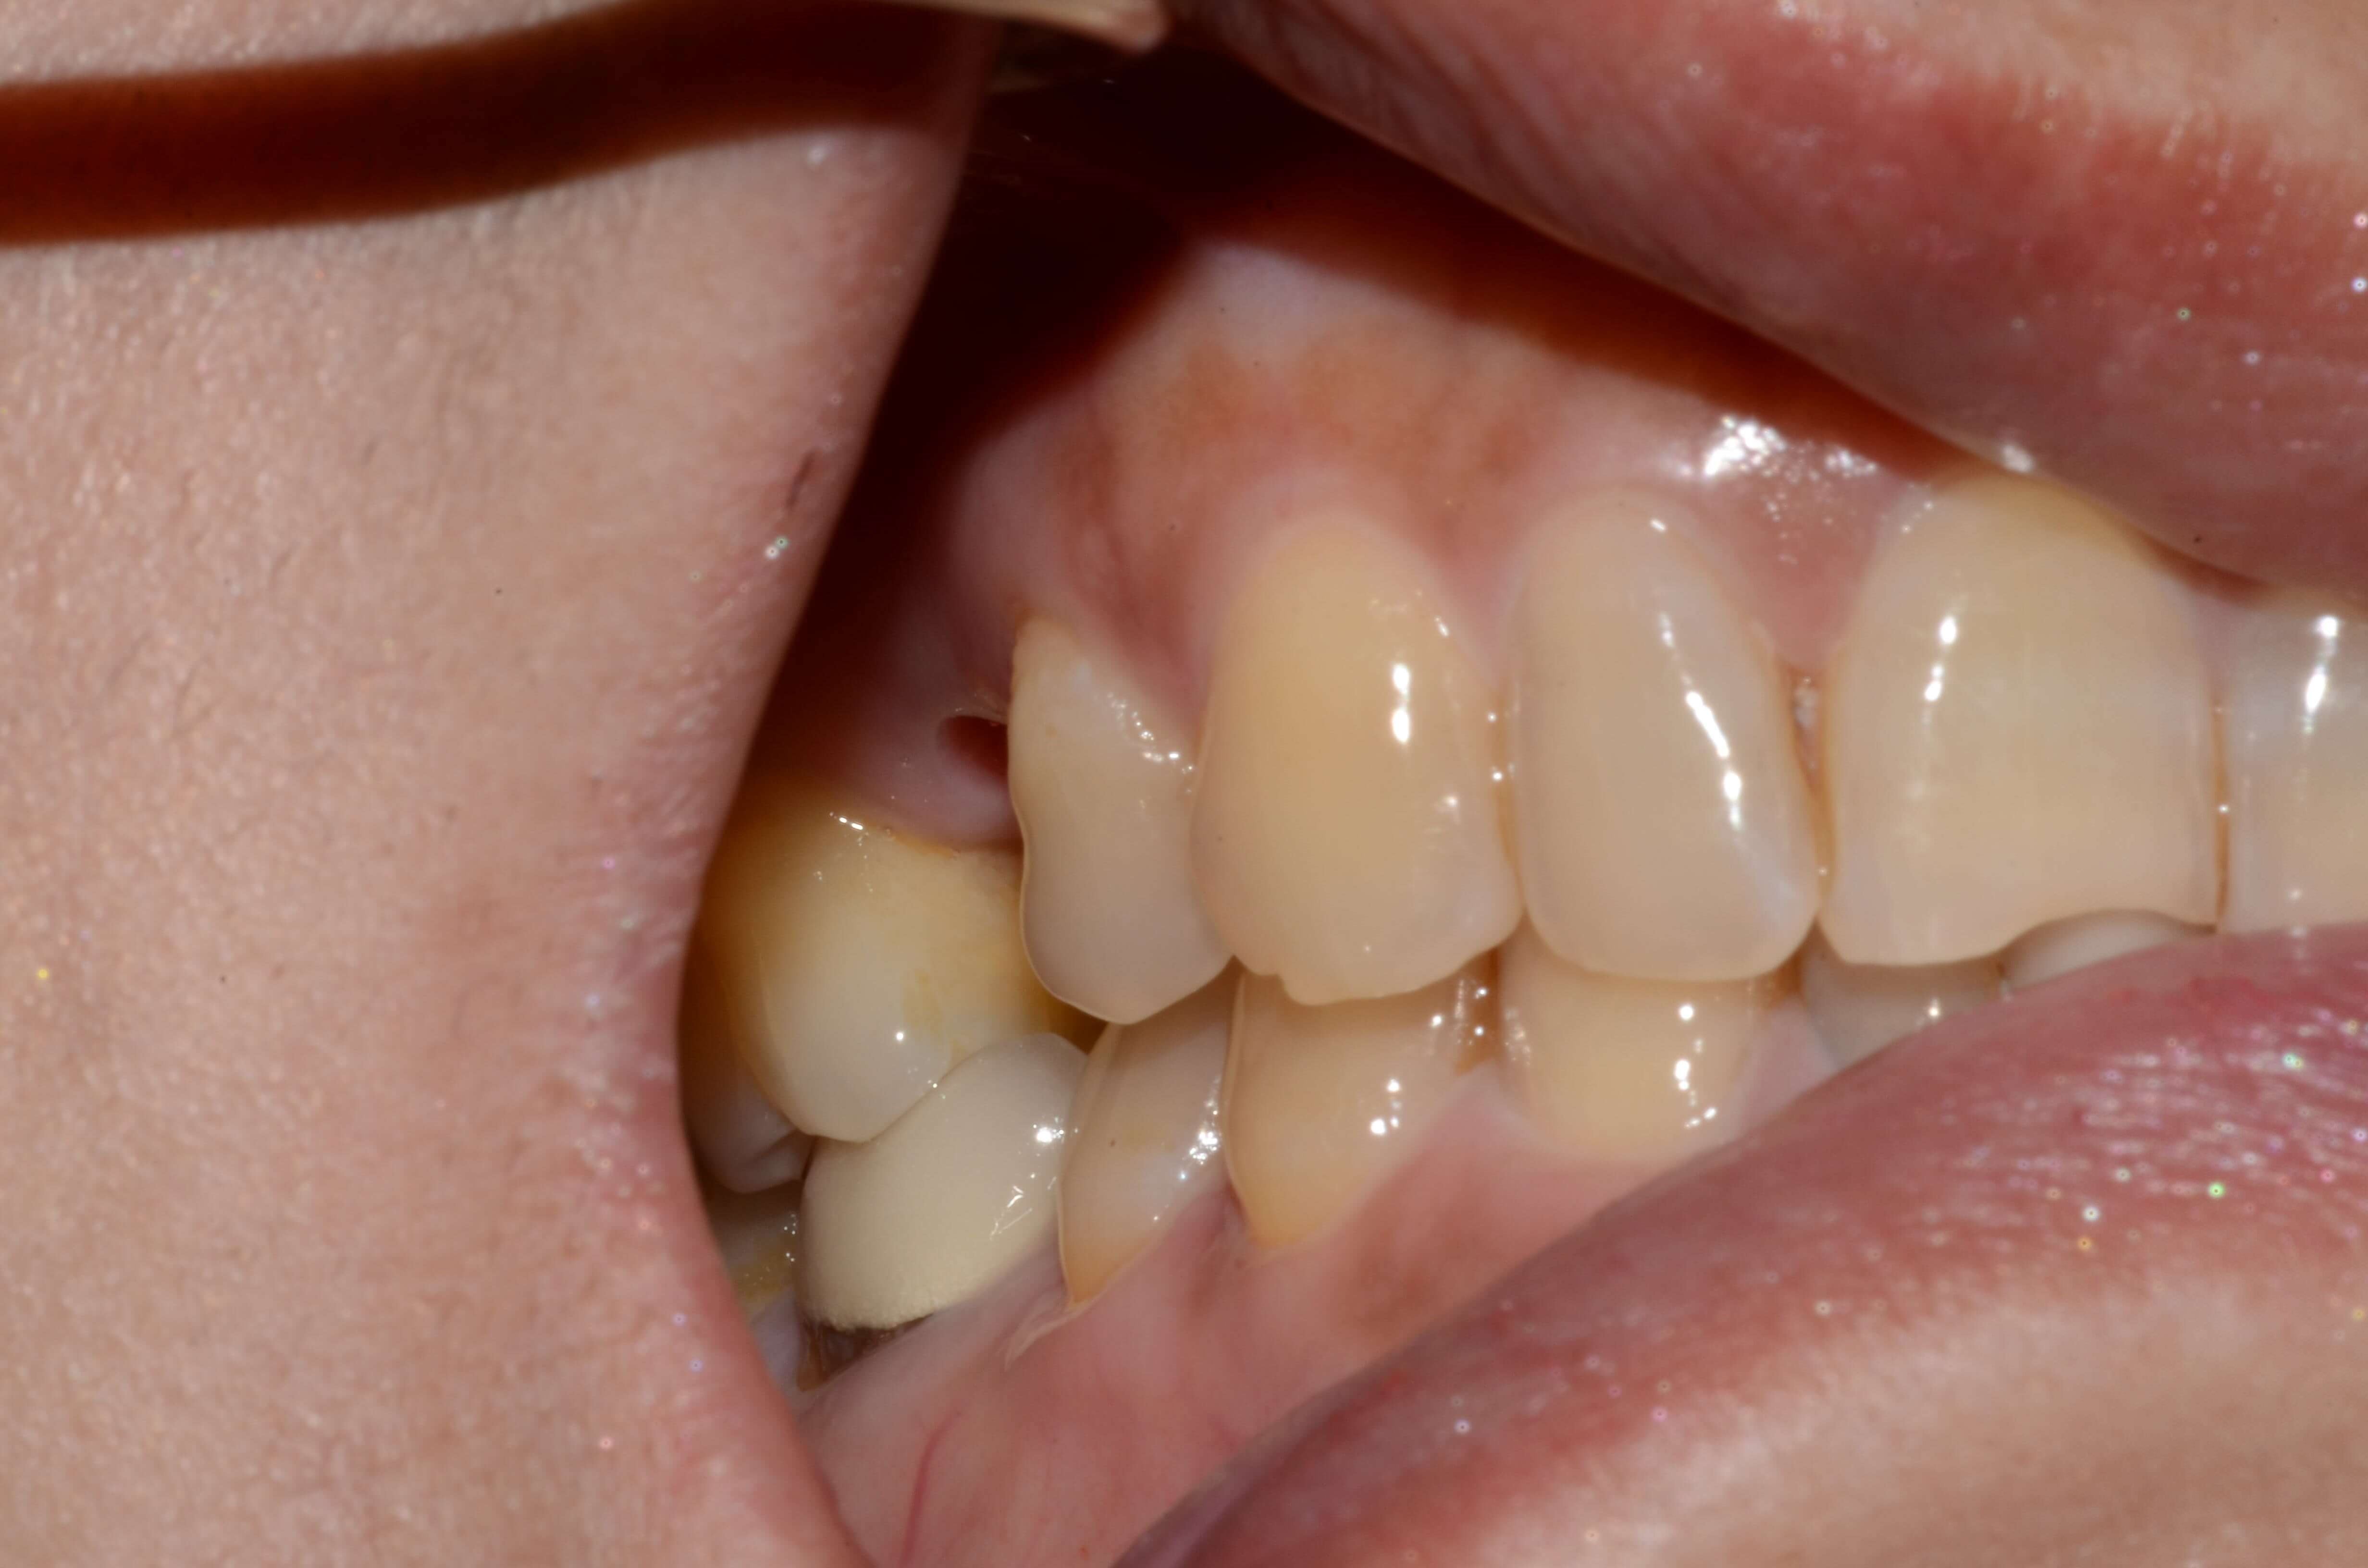 Tricities Dental Implant Crown Before